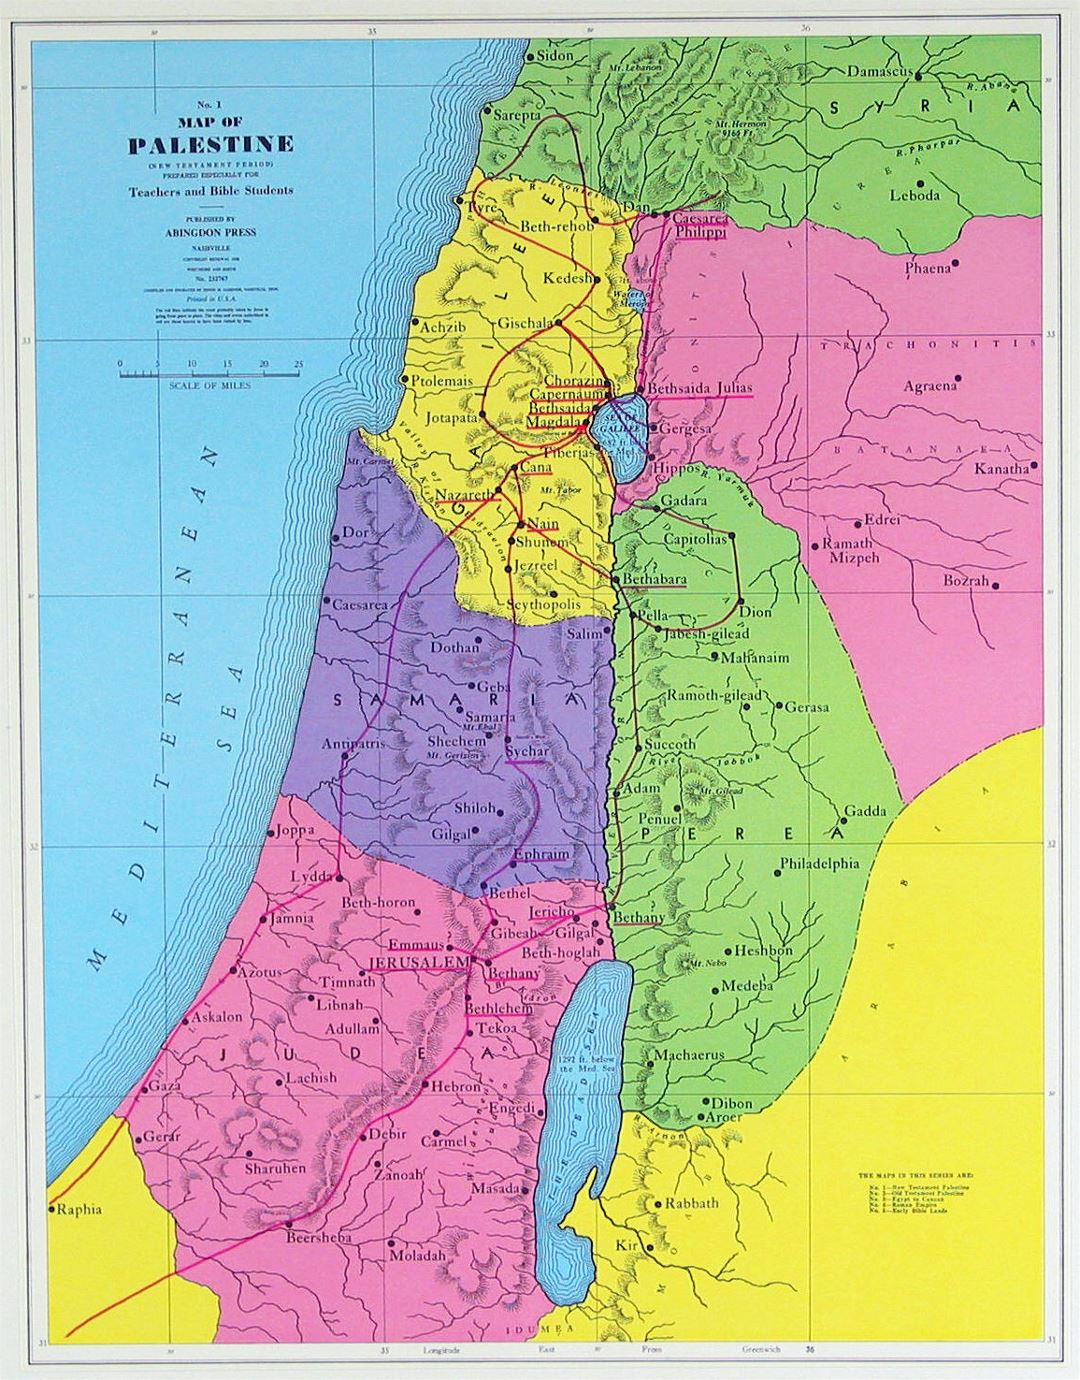 Detailed map of Palestine New Testament Period